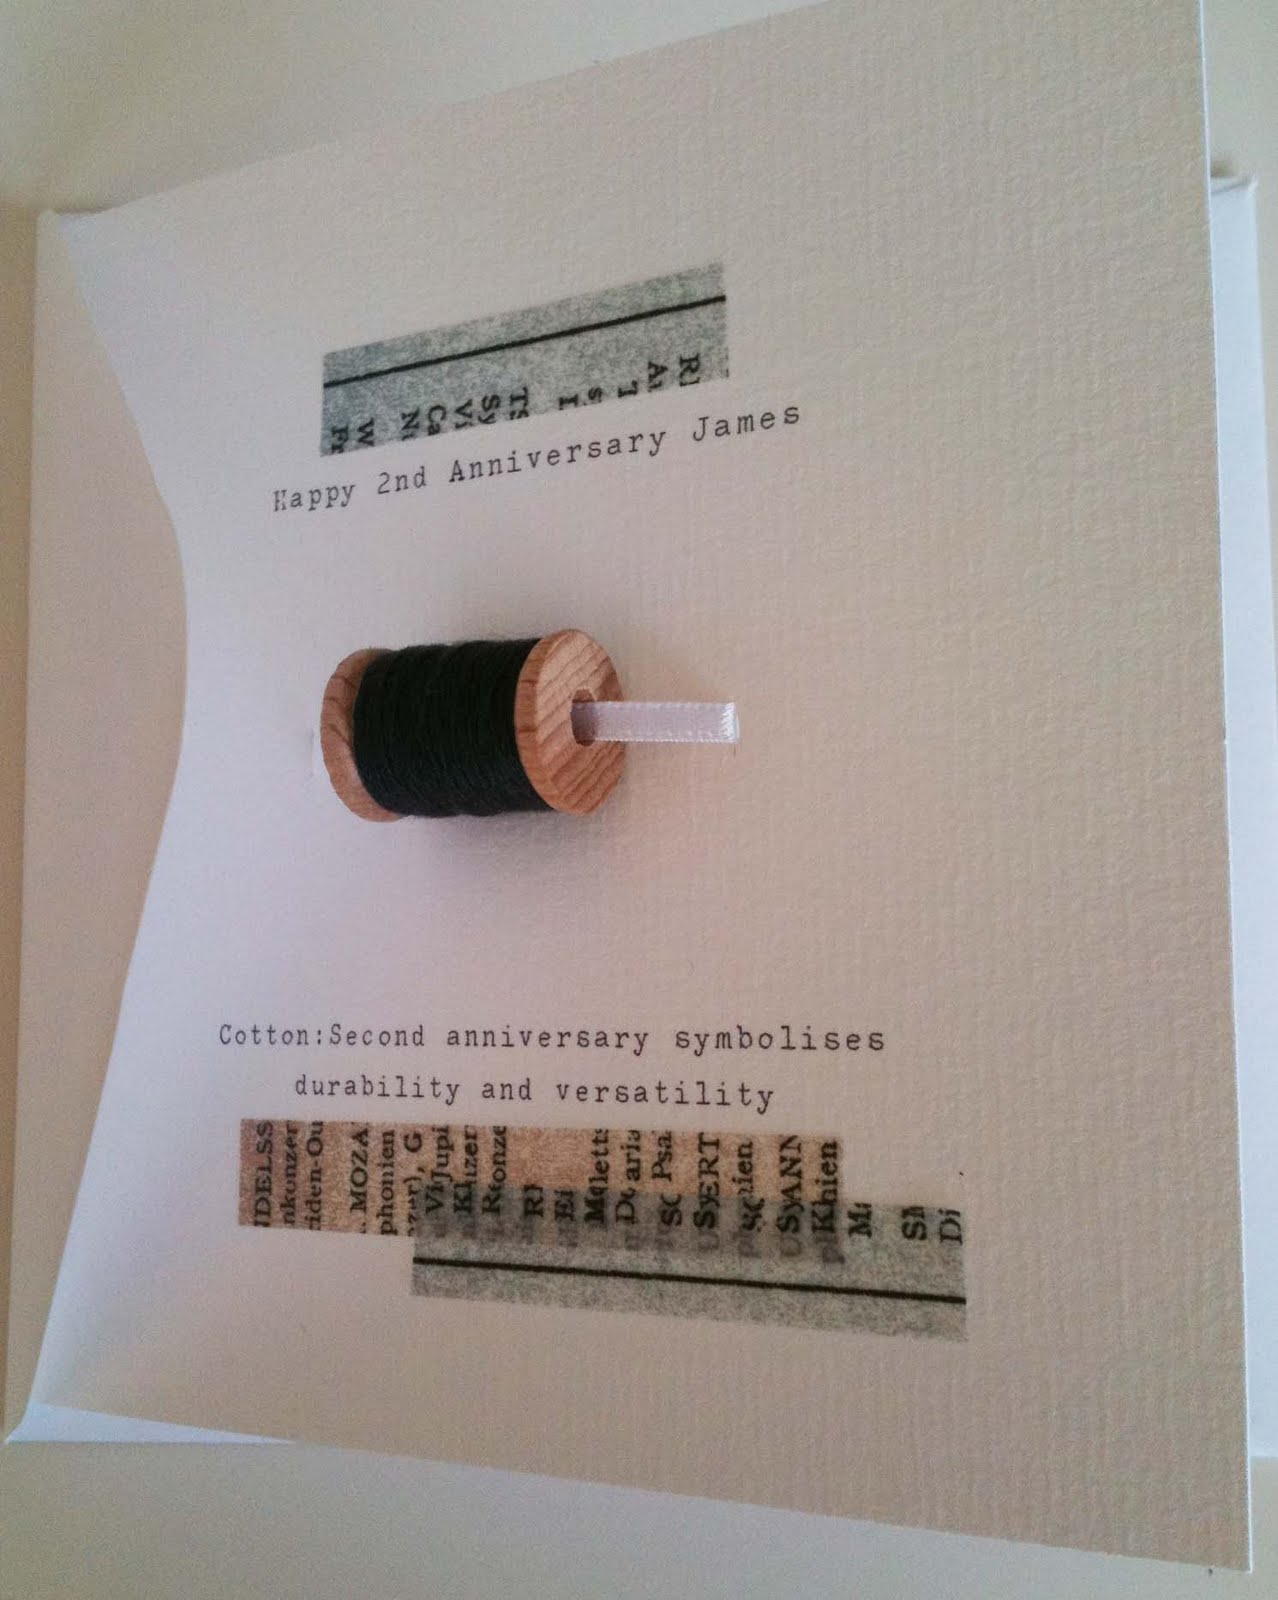 Awesome Cotton Wedding Anniversary Gift Gallery - Styles & Ideas ...